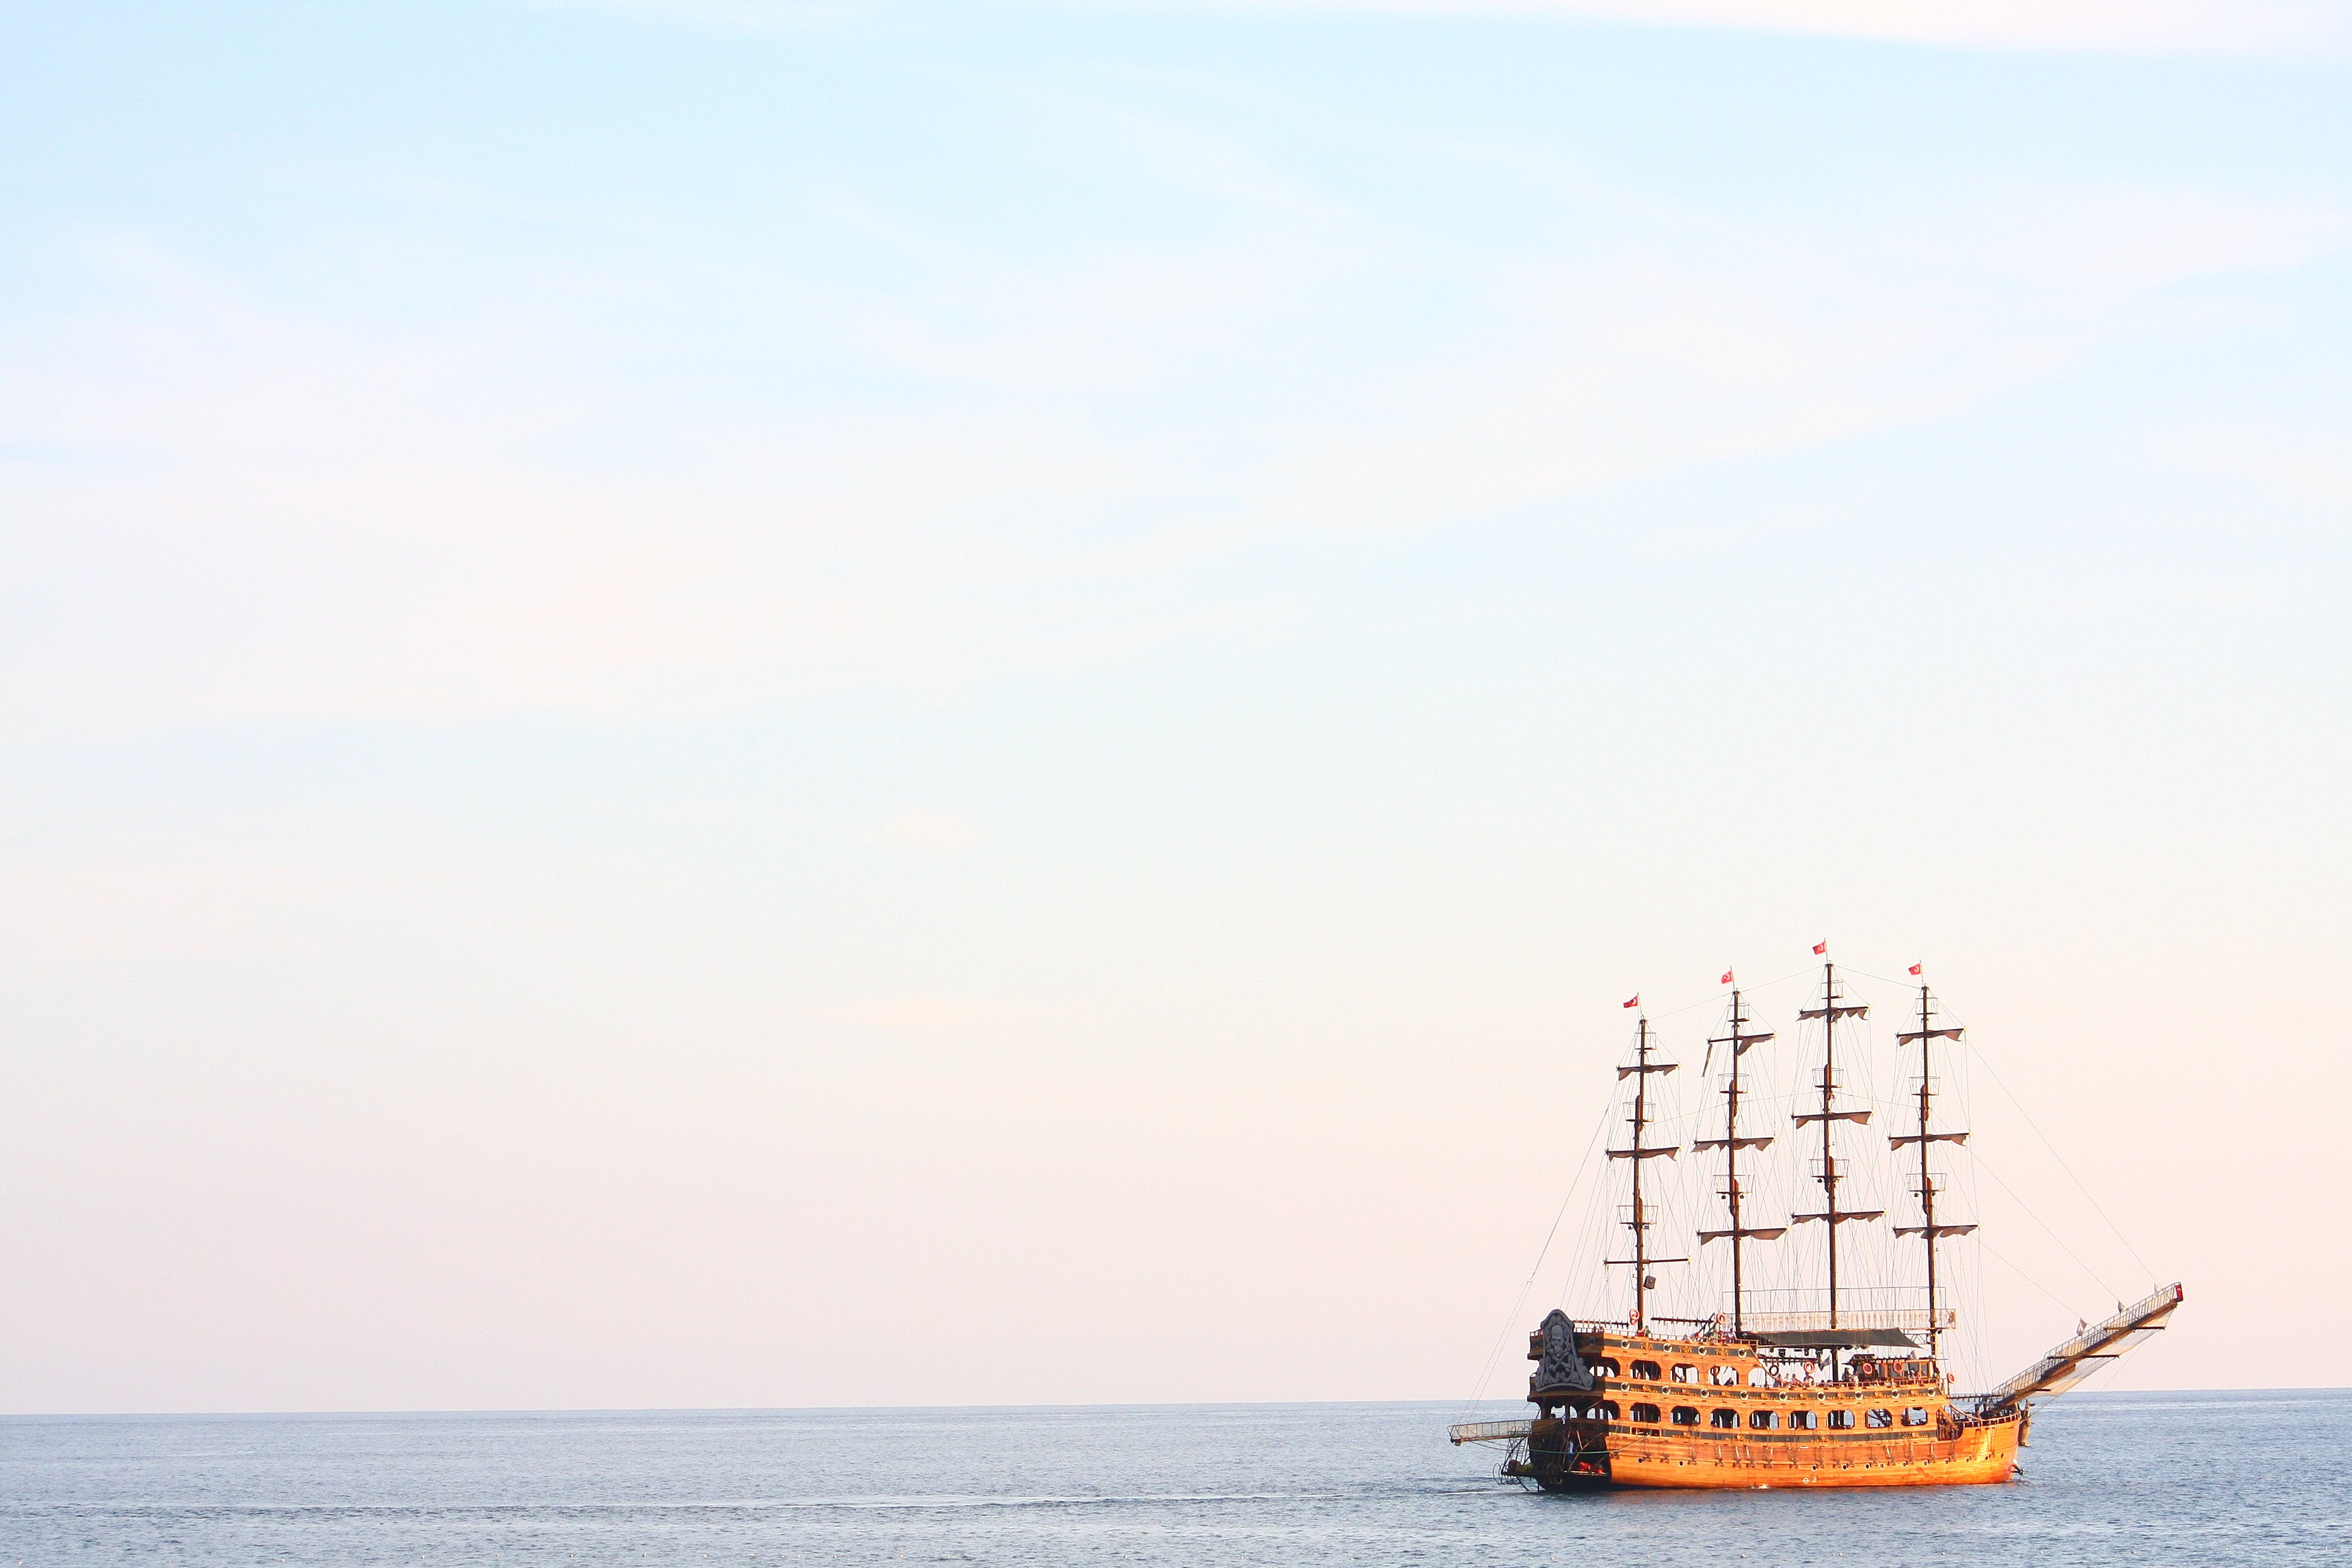 Photography of Brown Wooden Ship on Body of Water